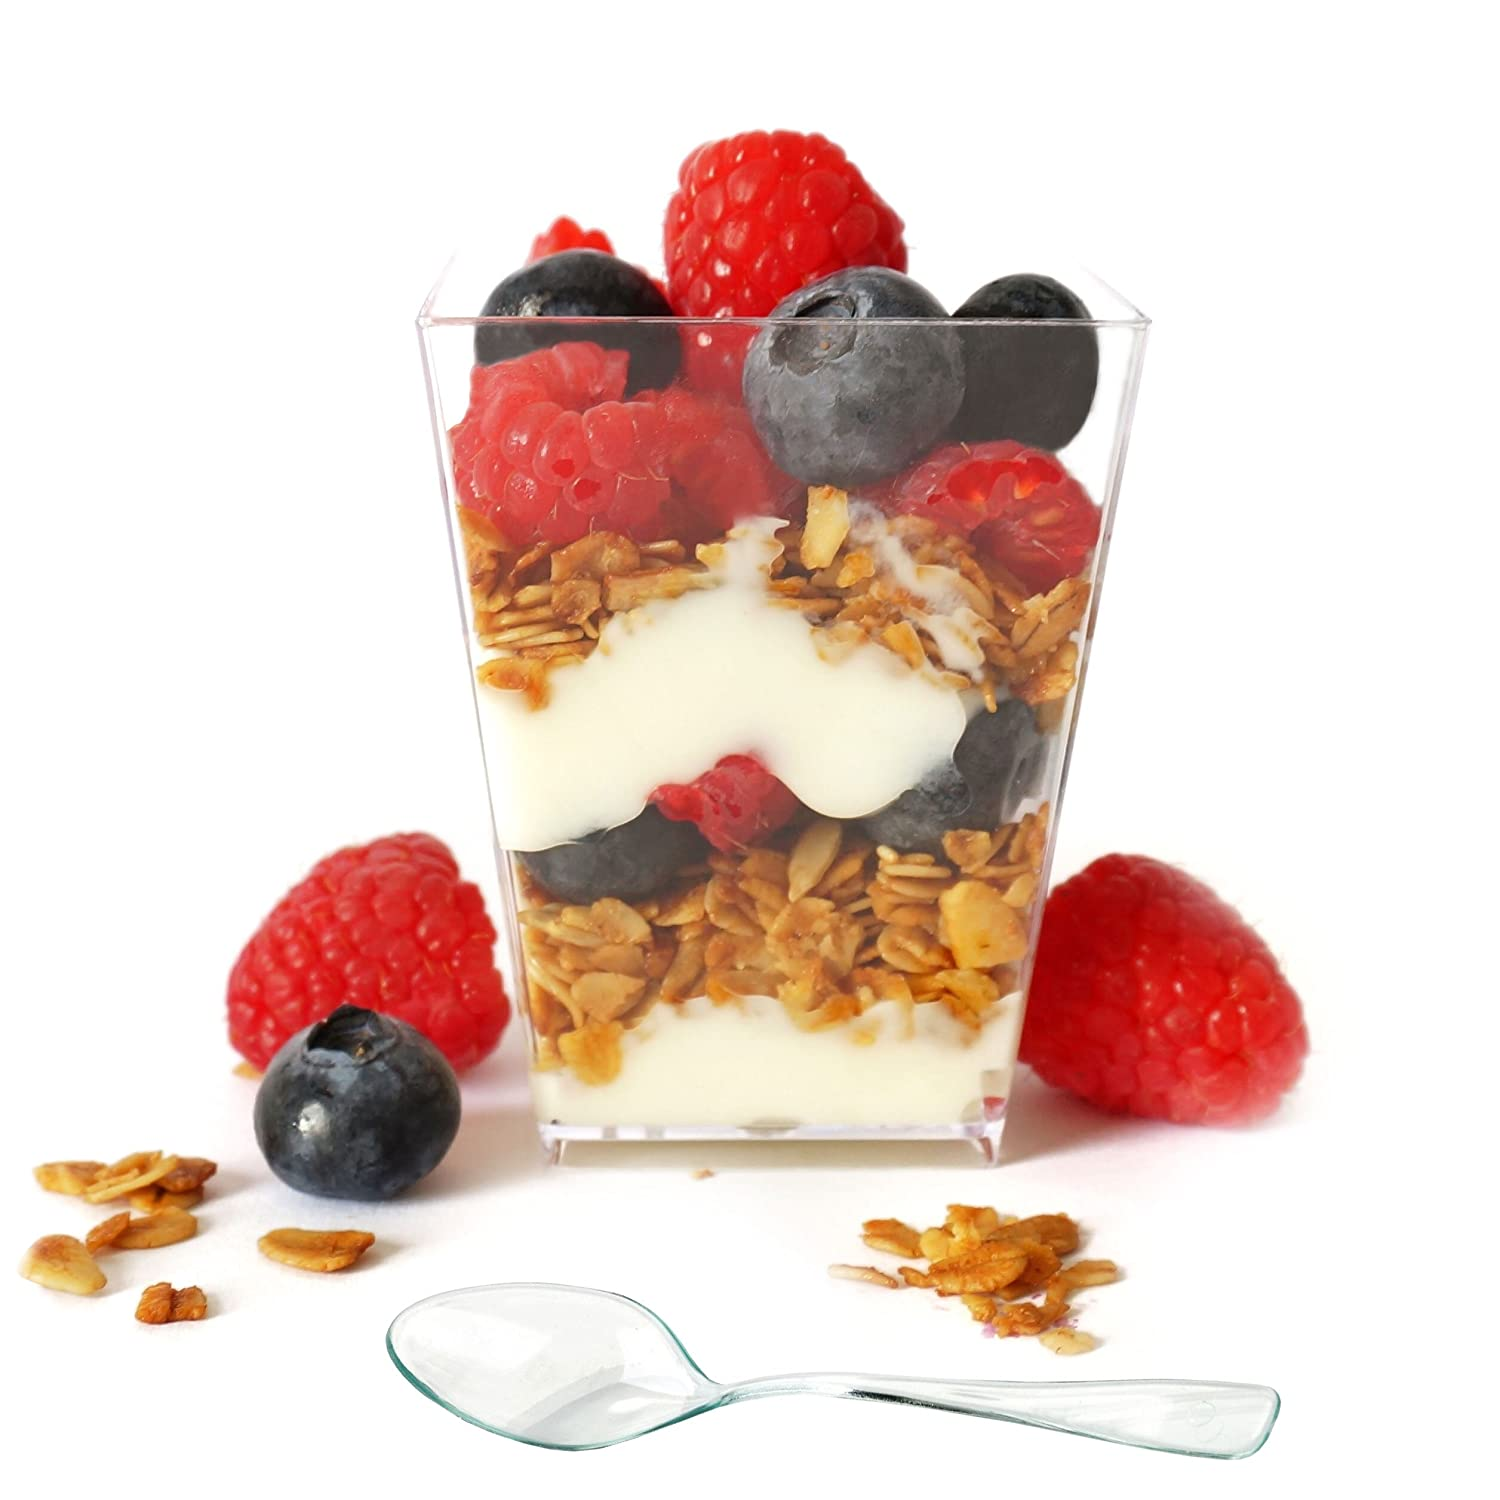 Professional Grade 5 oz Clear Plastic Dessert Cups (50-Pack) with Mini Spoons by Market Lane